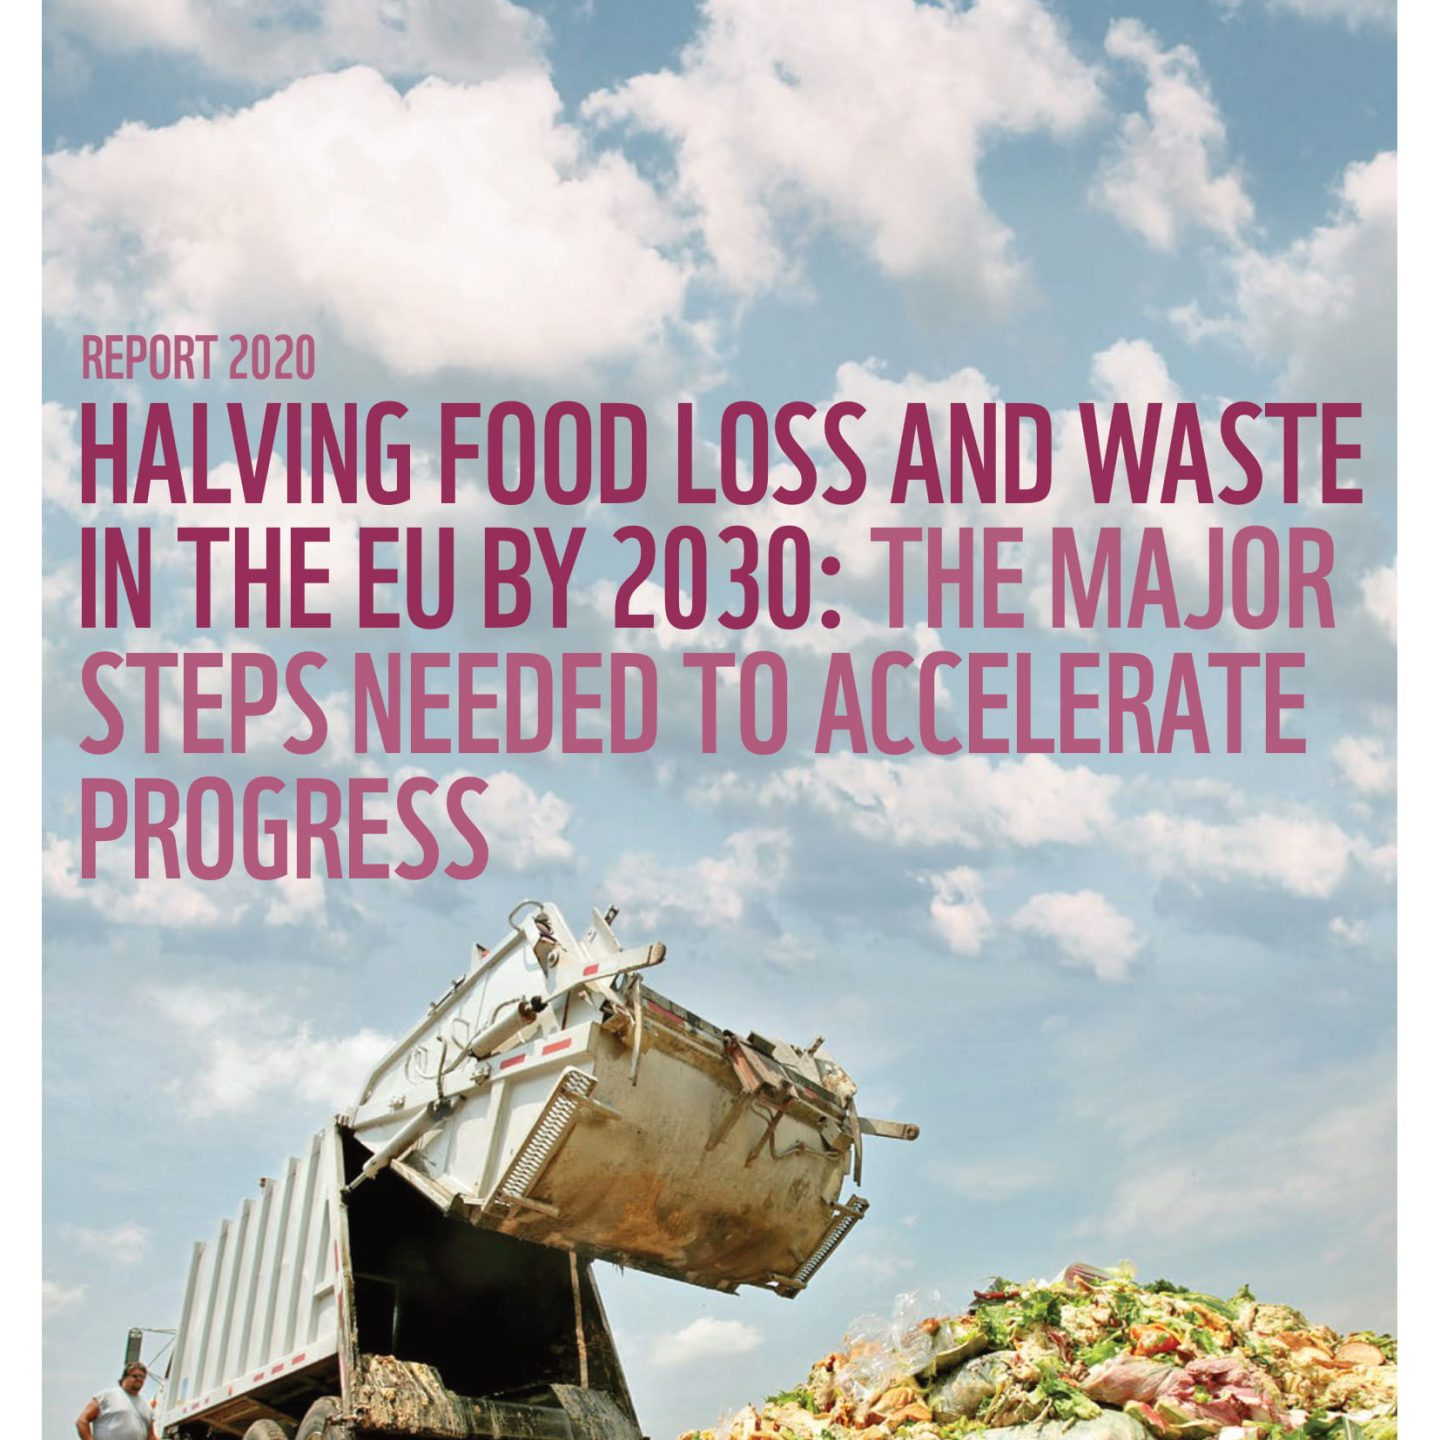 Nowy raport WWF+WRAP nt. 'food waste'